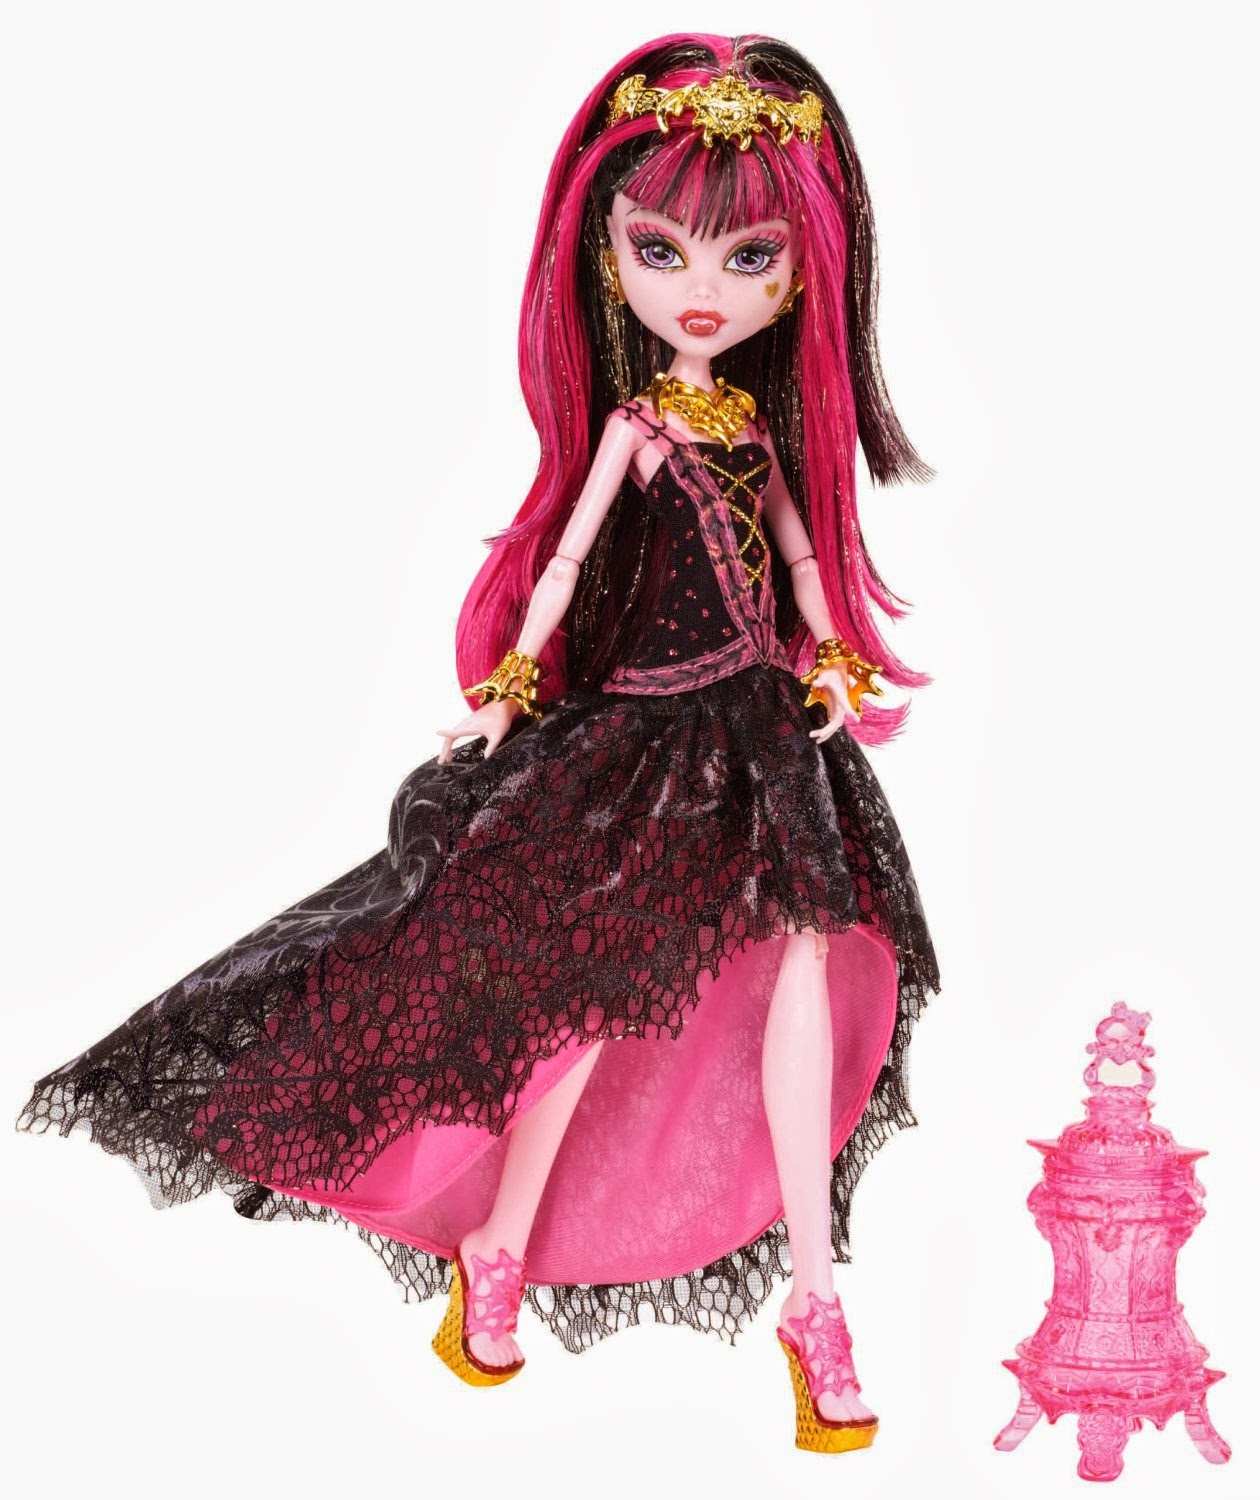 Monster Entertainment Featuring a monsterrific blend of Werewolf and Plant Monster scaritages, the Monster High Freaky Fusions Clawvenus Doll is a positively frightful addition to any collection for play or display - a doll stand is included.